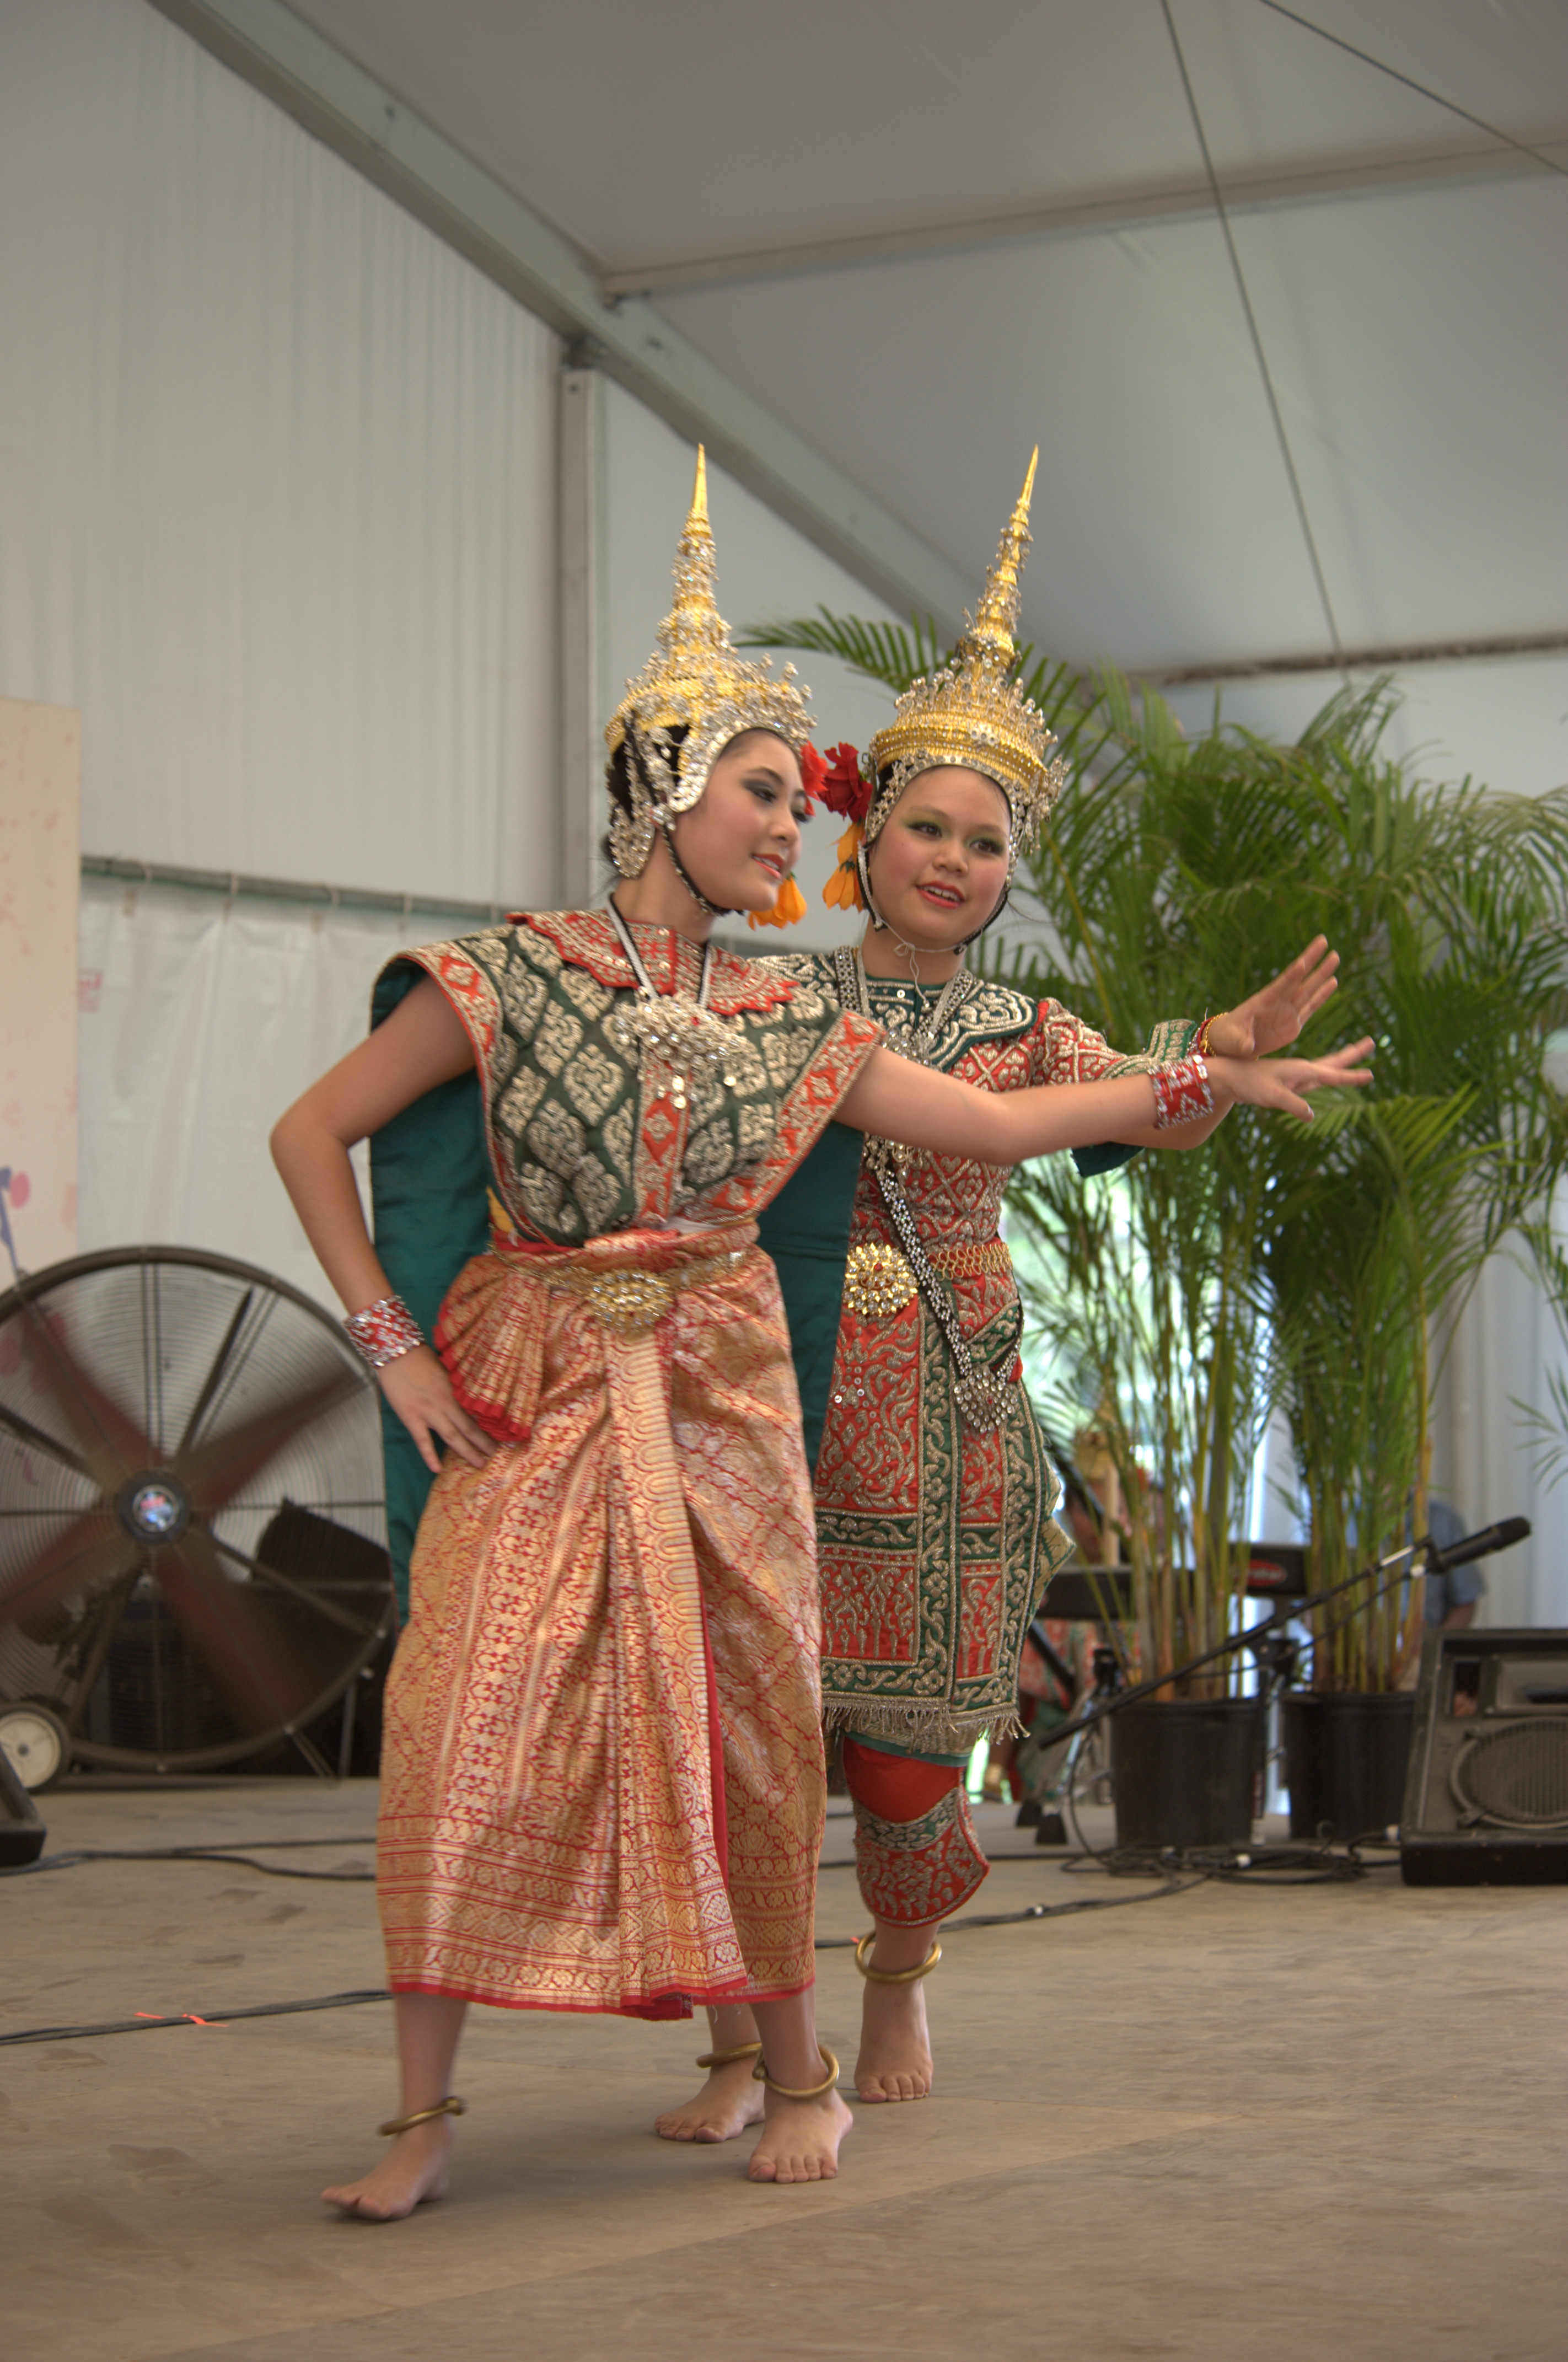 Two festival participants dancing with fan and plants behind them